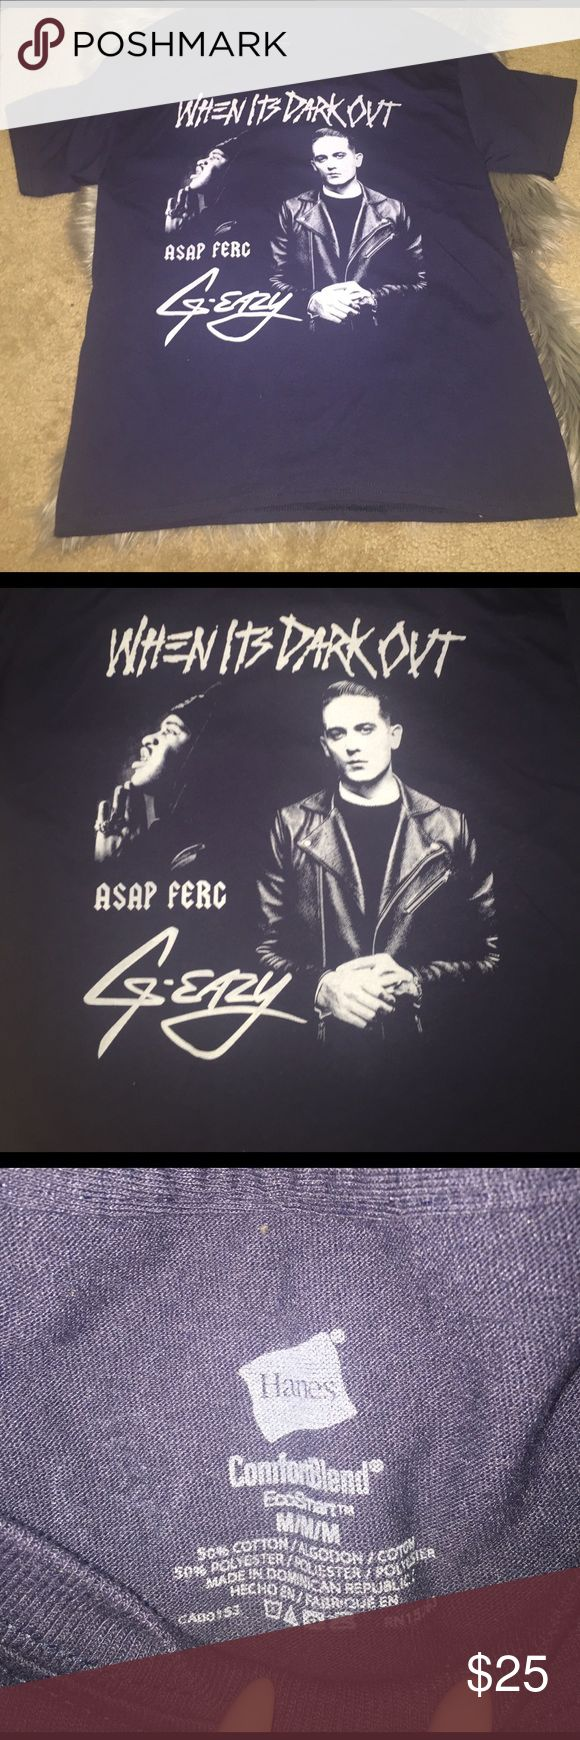 G-Eazy When It's Dark Out Tour T Shirt From his JAN 2015 New York concert. asap ferg on it as well. COLOR IS NAVY. Urban Outfitters Tops Tees - Short Sleeve